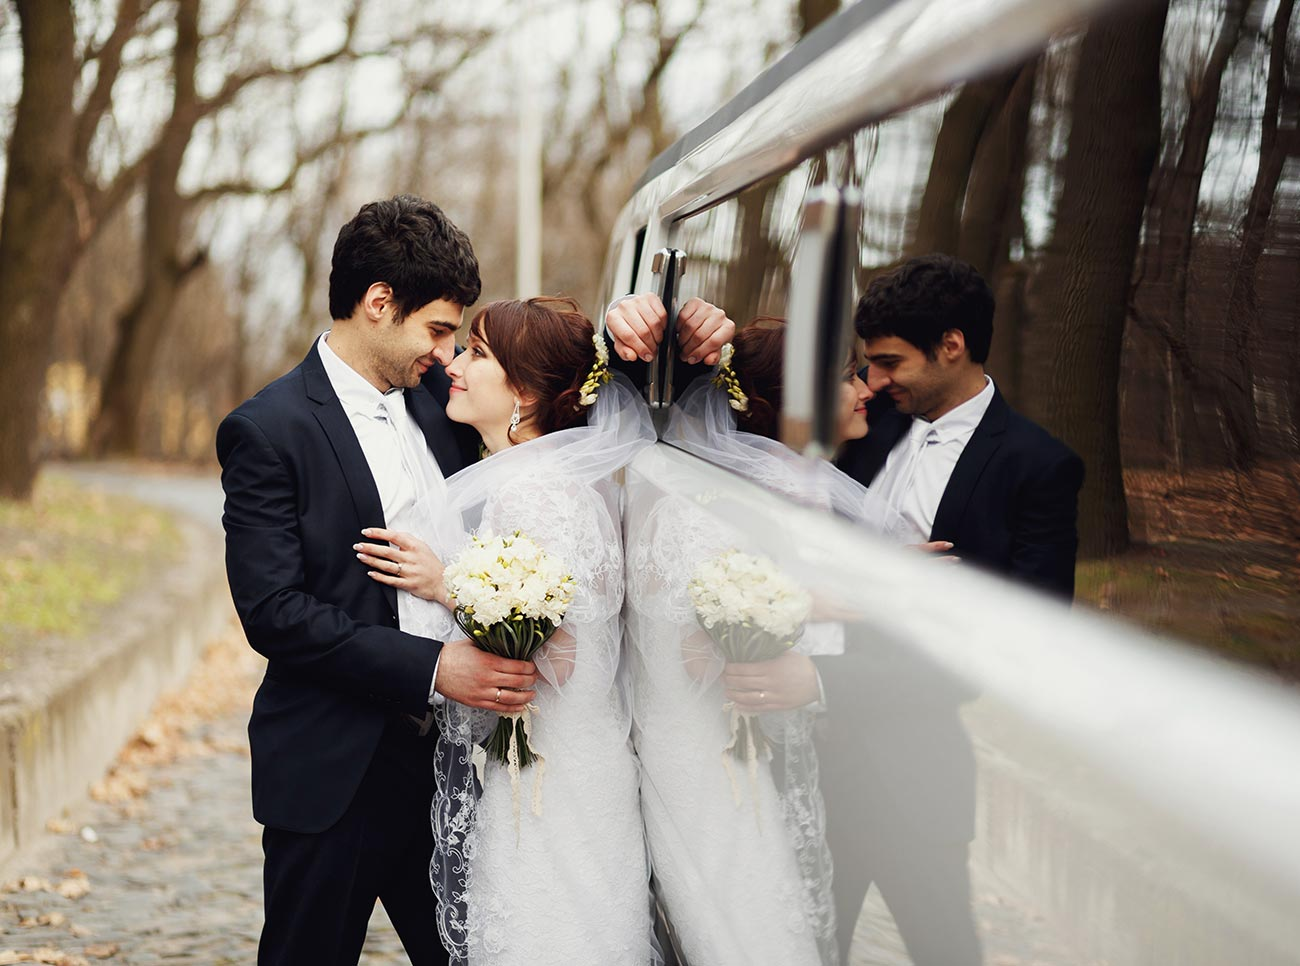 LI Wedding SUV Limos